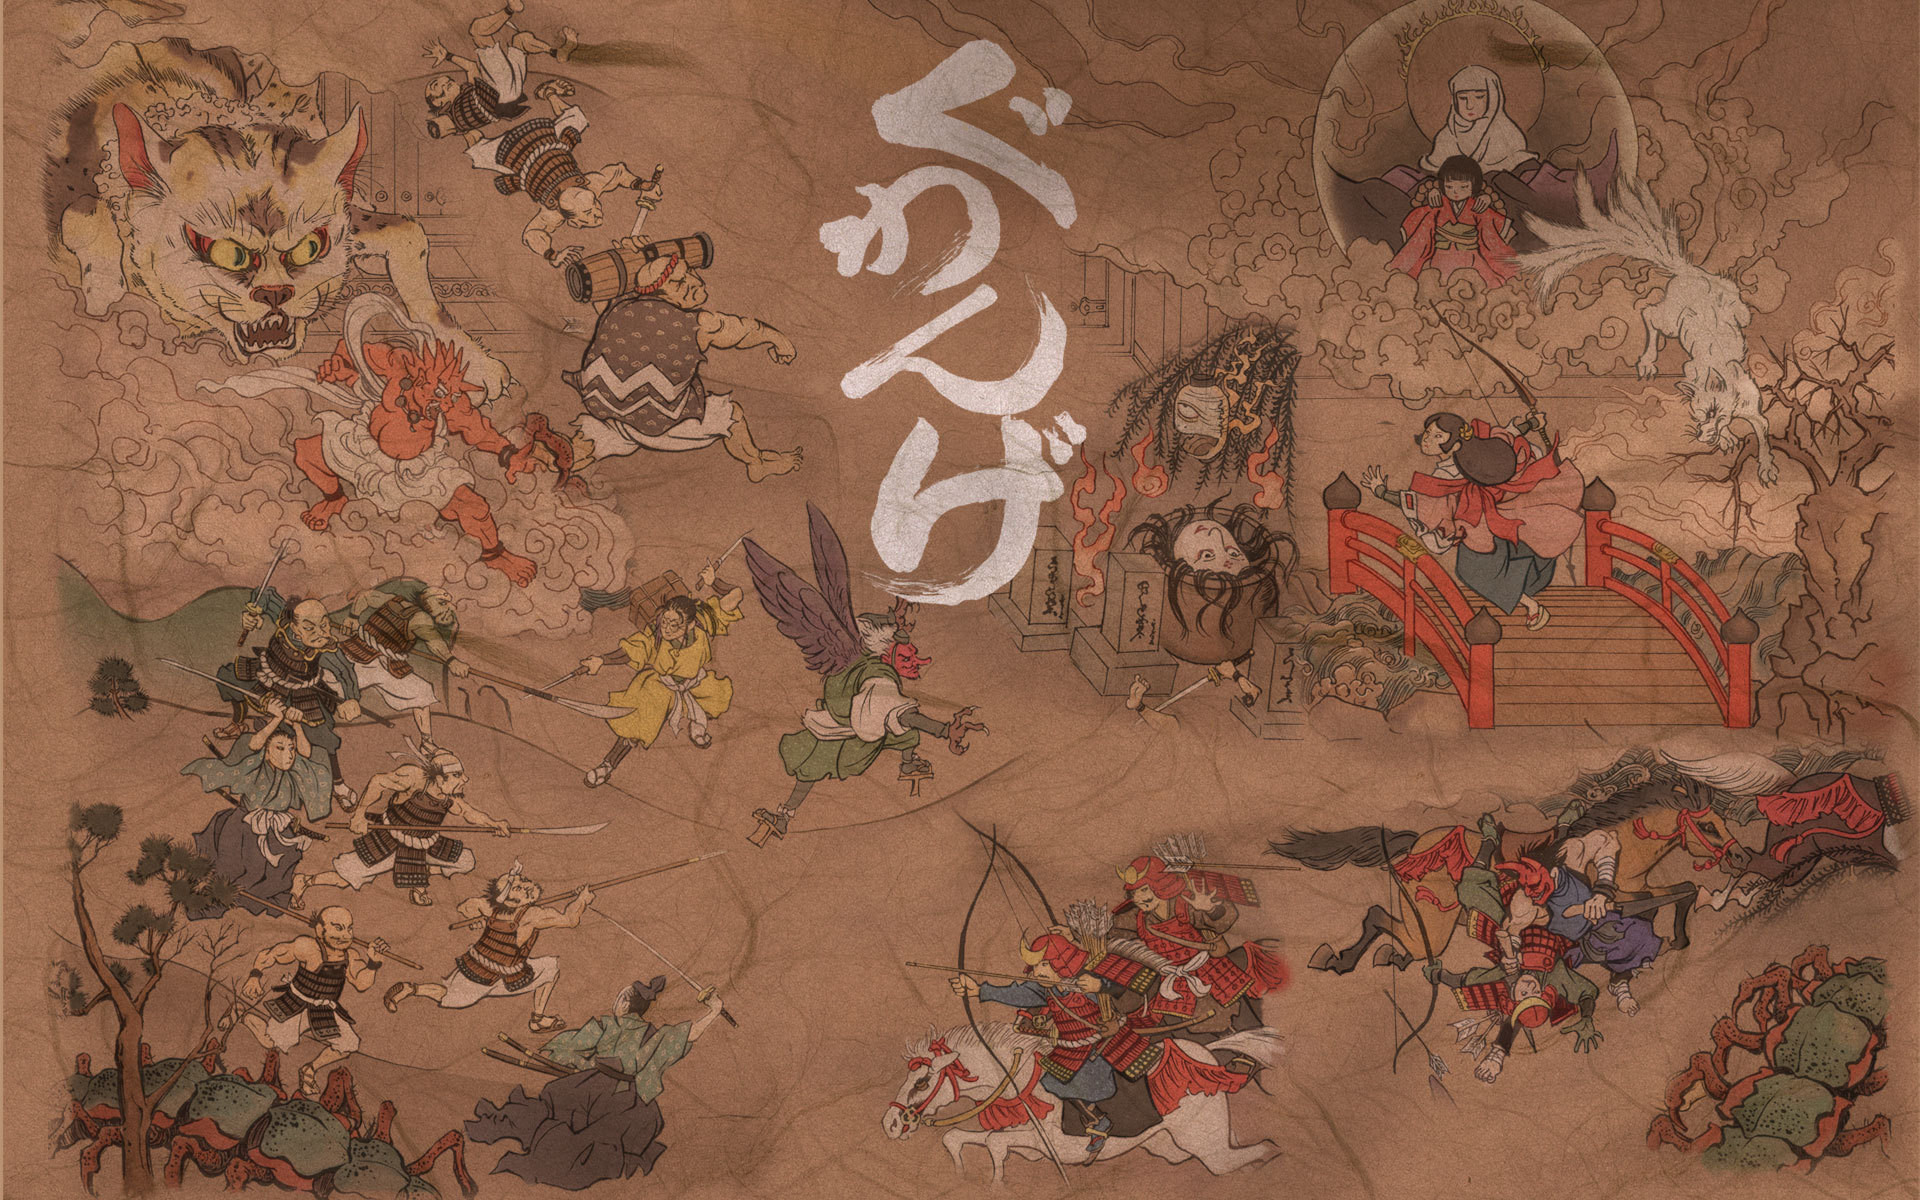 1920x1200 Image detail for -Japanese Art Wallpapers, Wall Art, Japan Wallpaper,  Paining |